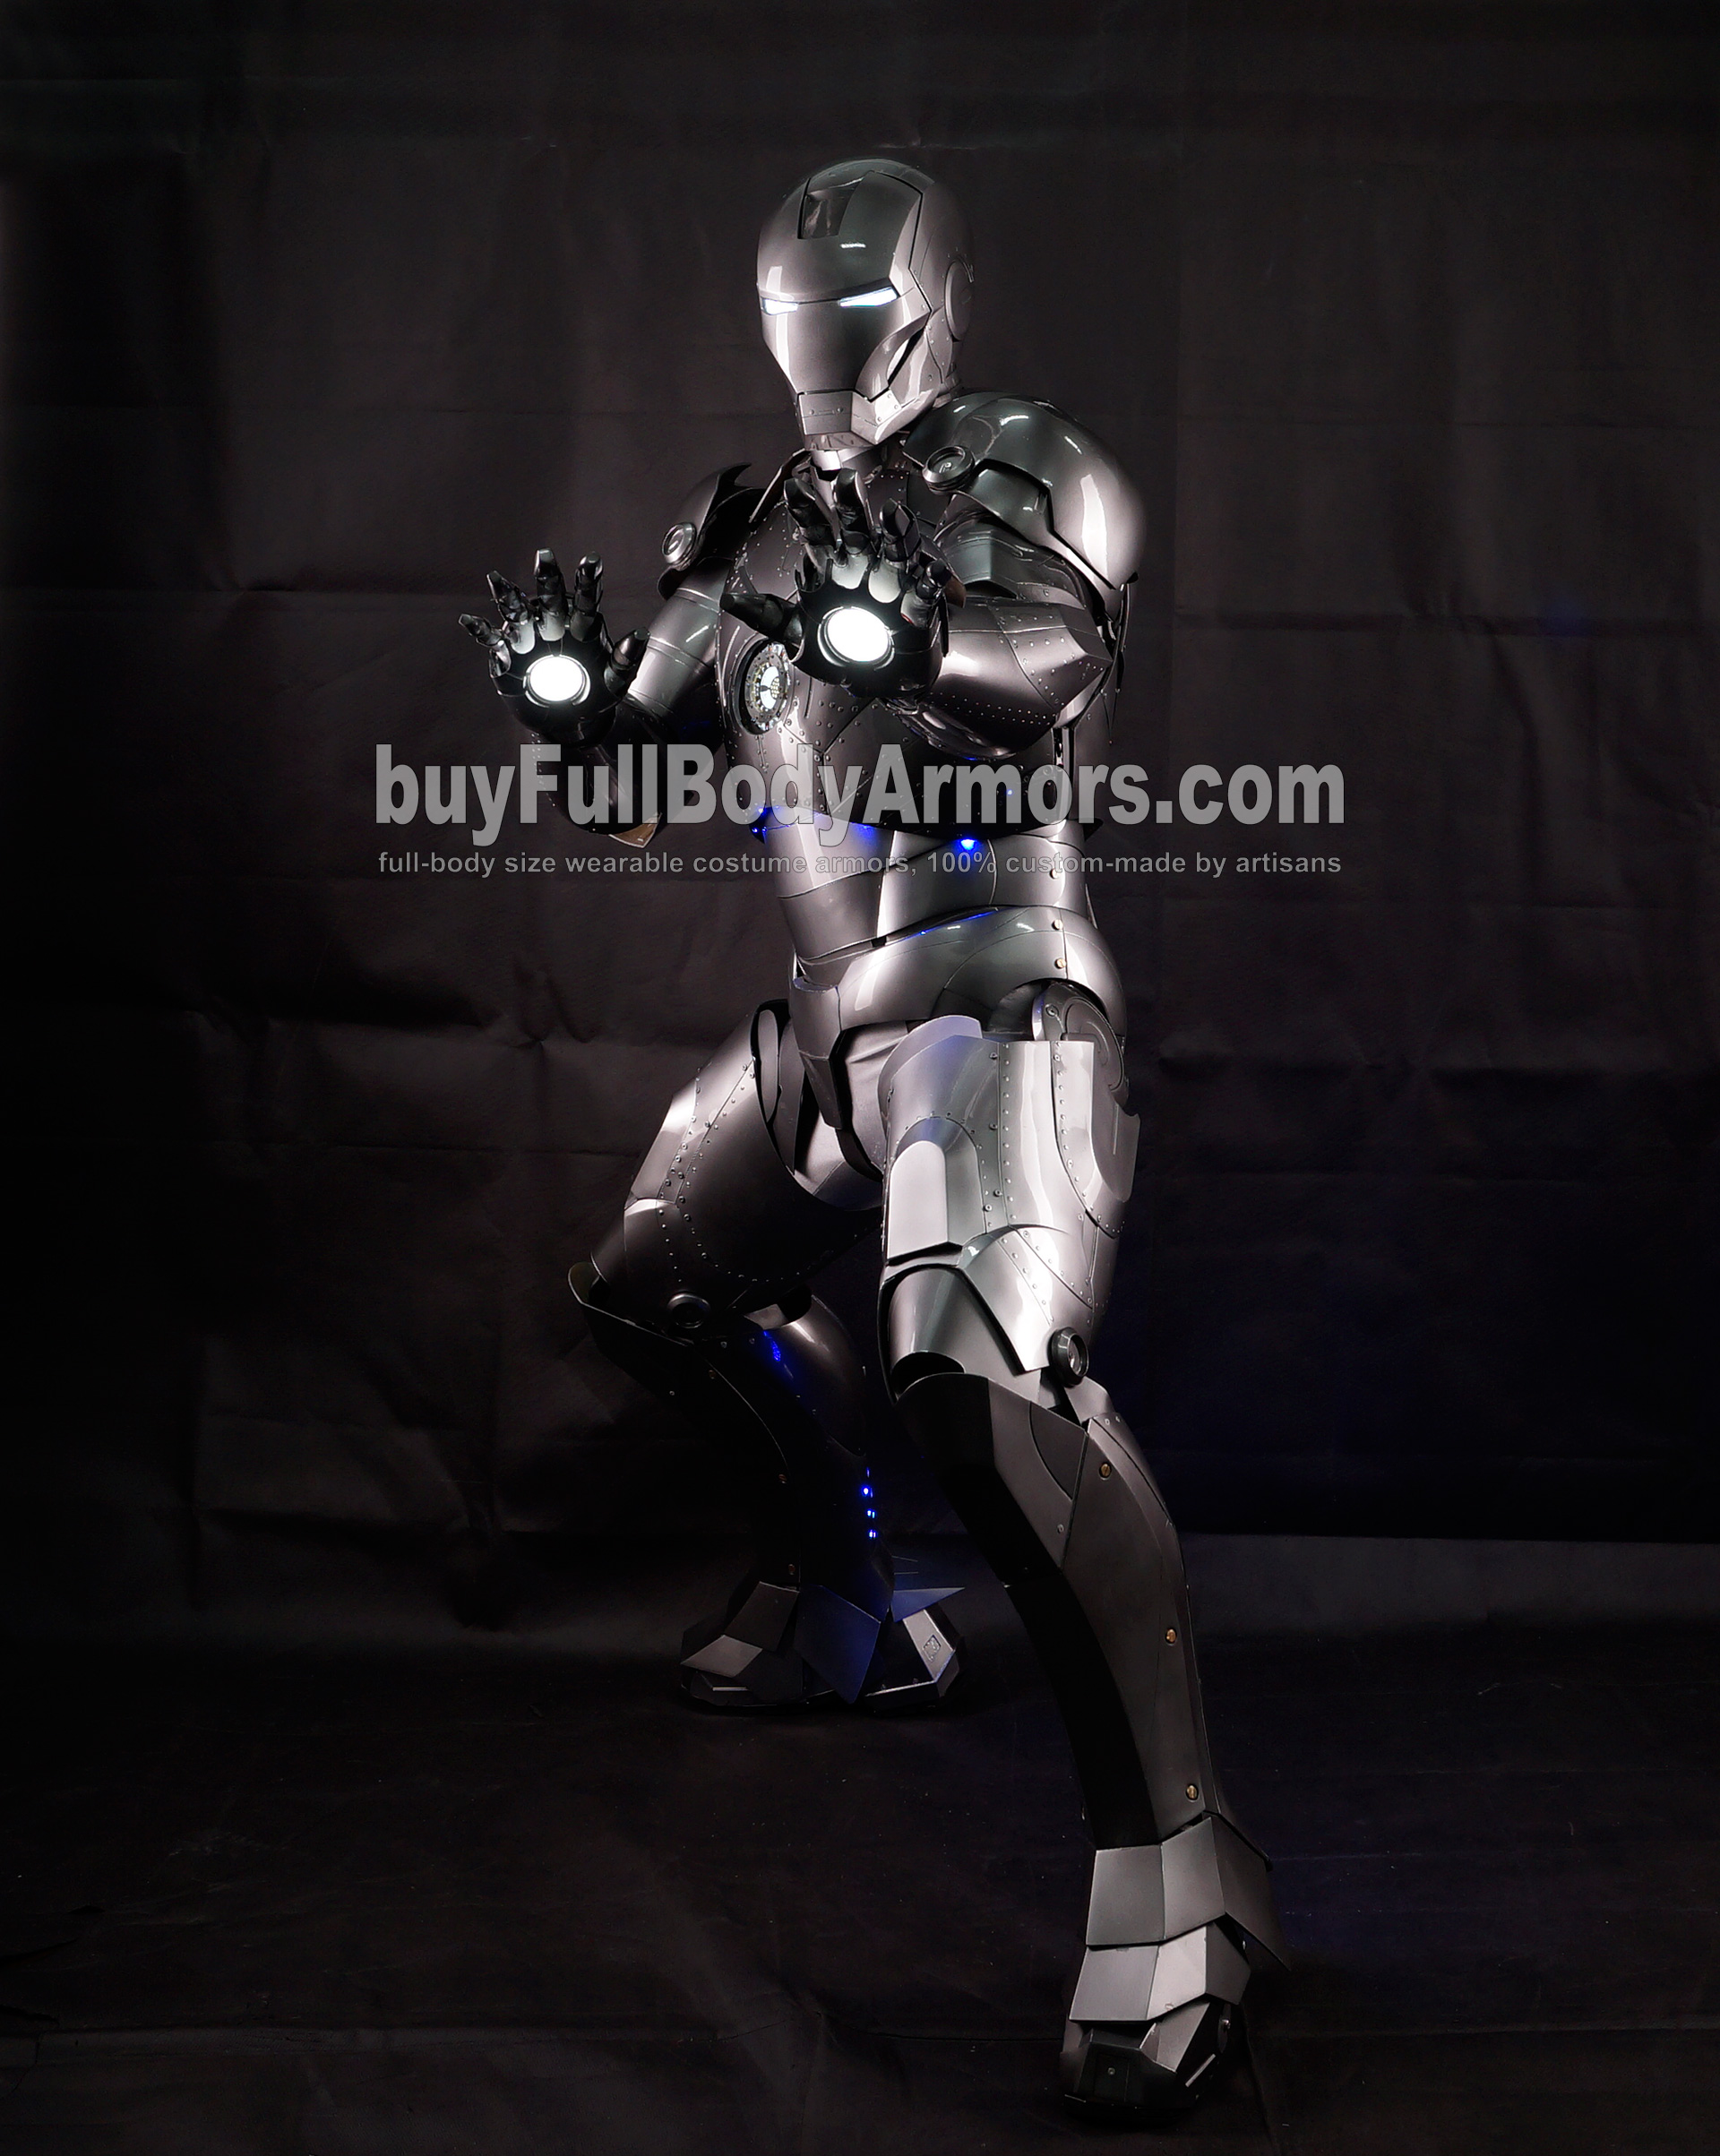 High Definition Photos of the Wearable Iron Man Mark 2 II Armor Costume Suit 6